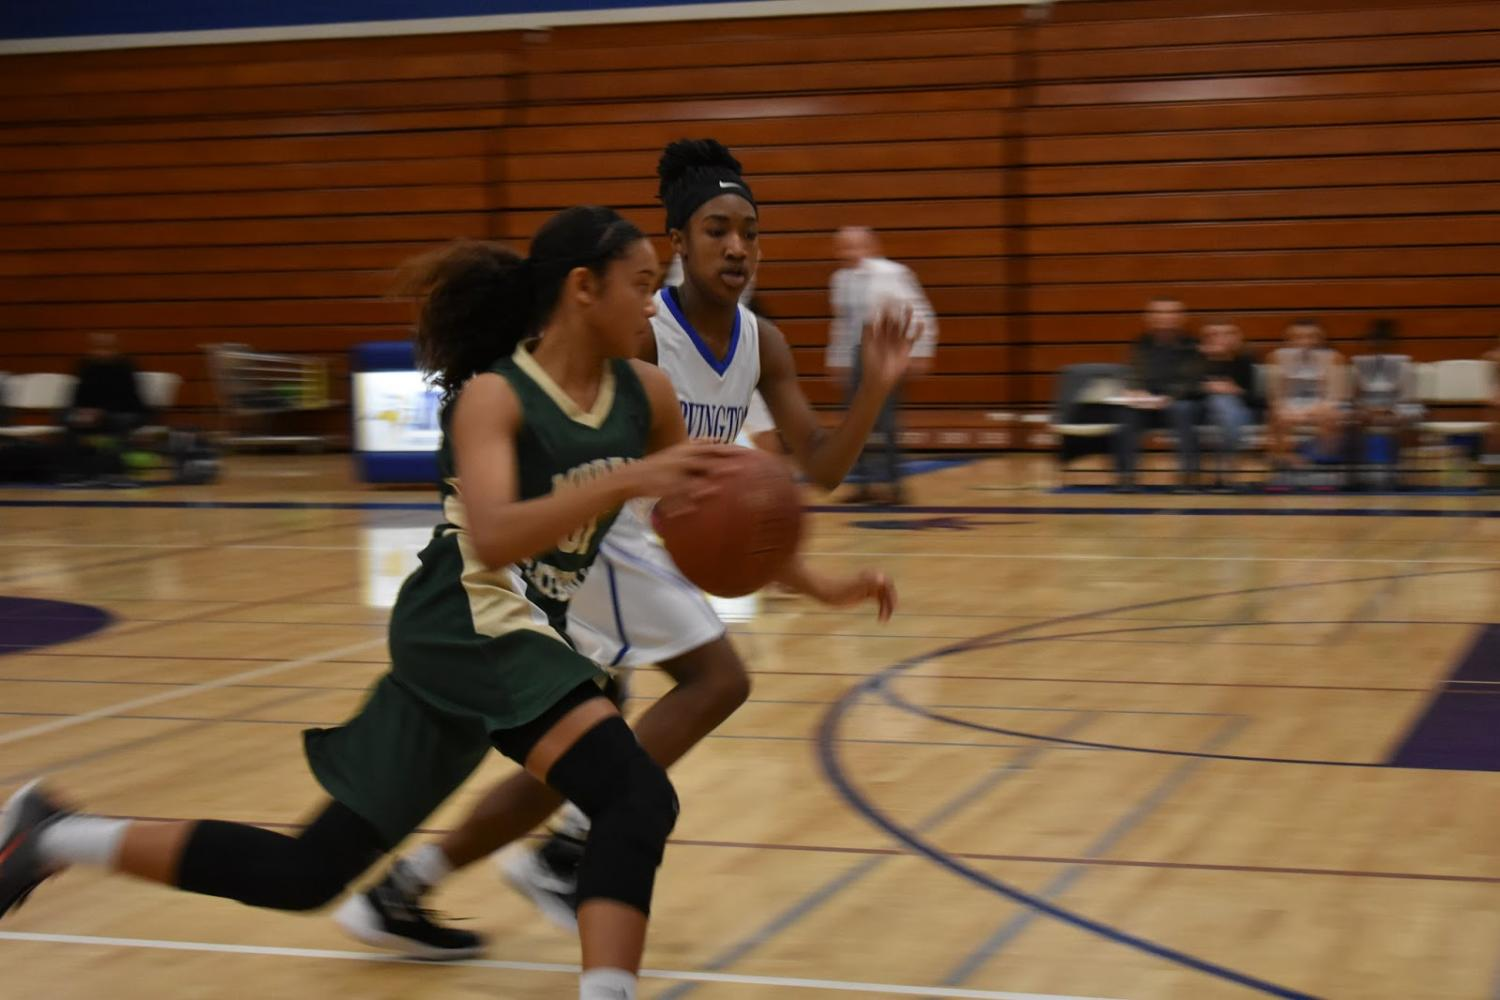 Sophomore+Alexis+Early+runs+alongside+a+Moreau+basketball+player+to+try+and+intercept+the+ball.%0A